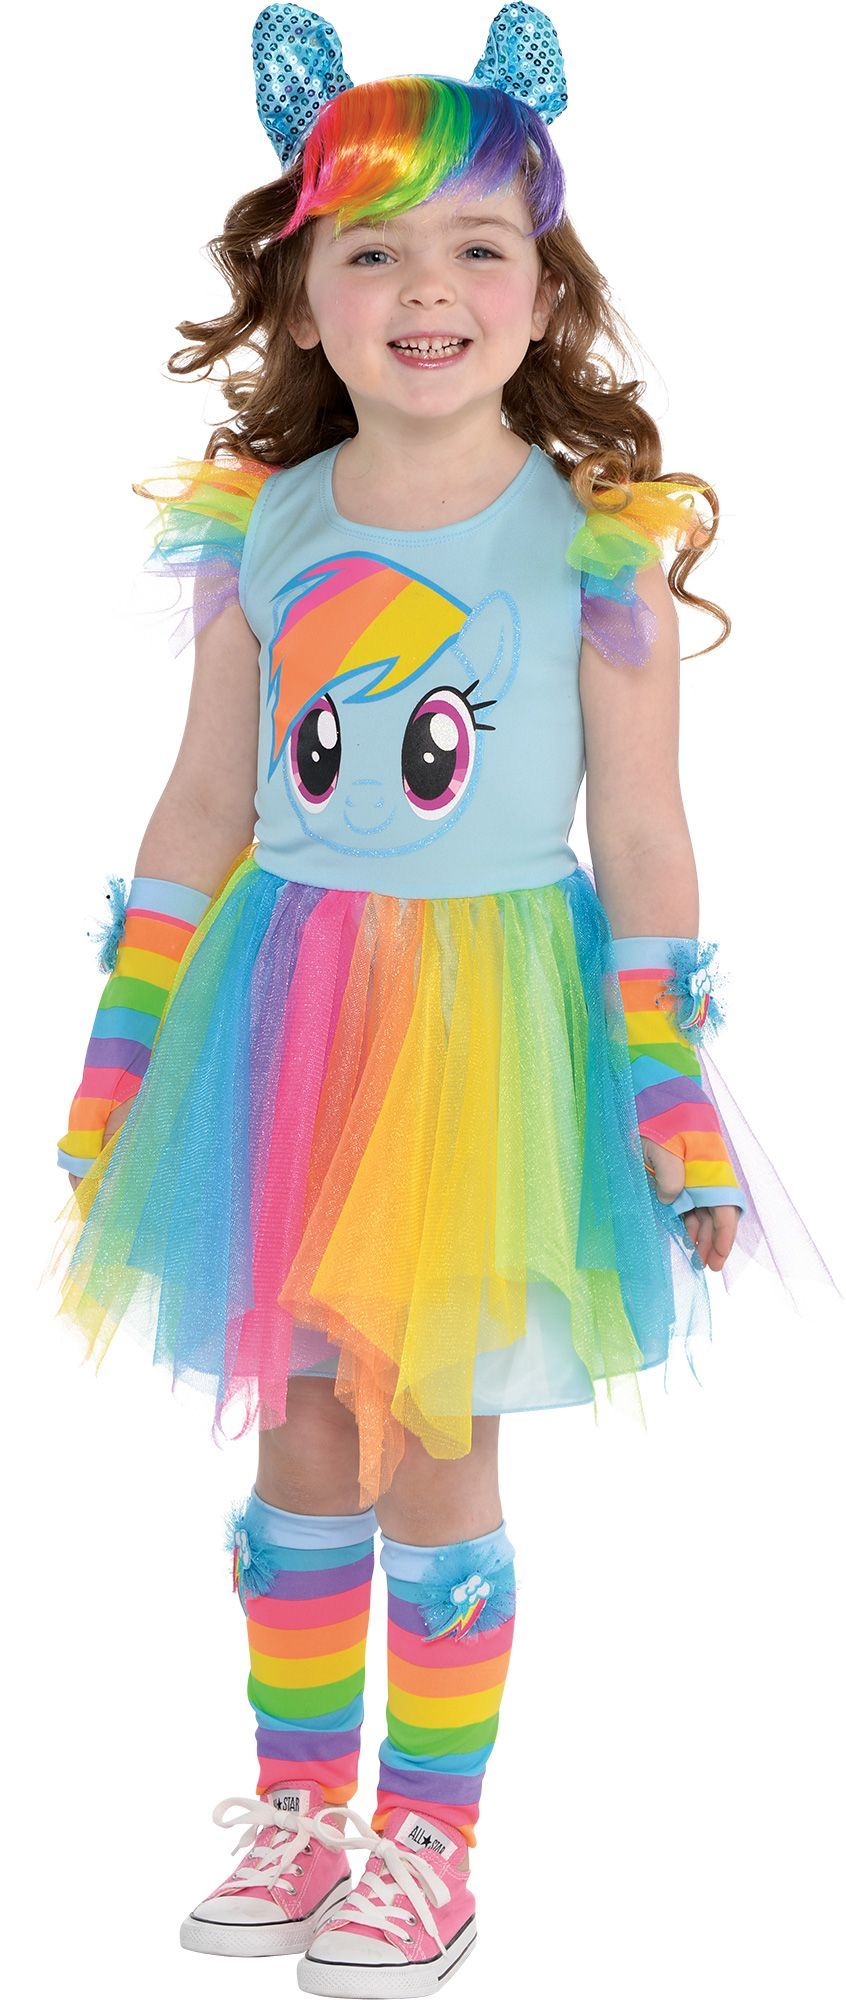 Make Your Costume - Girls My Little Pony #1 | Halloween ...